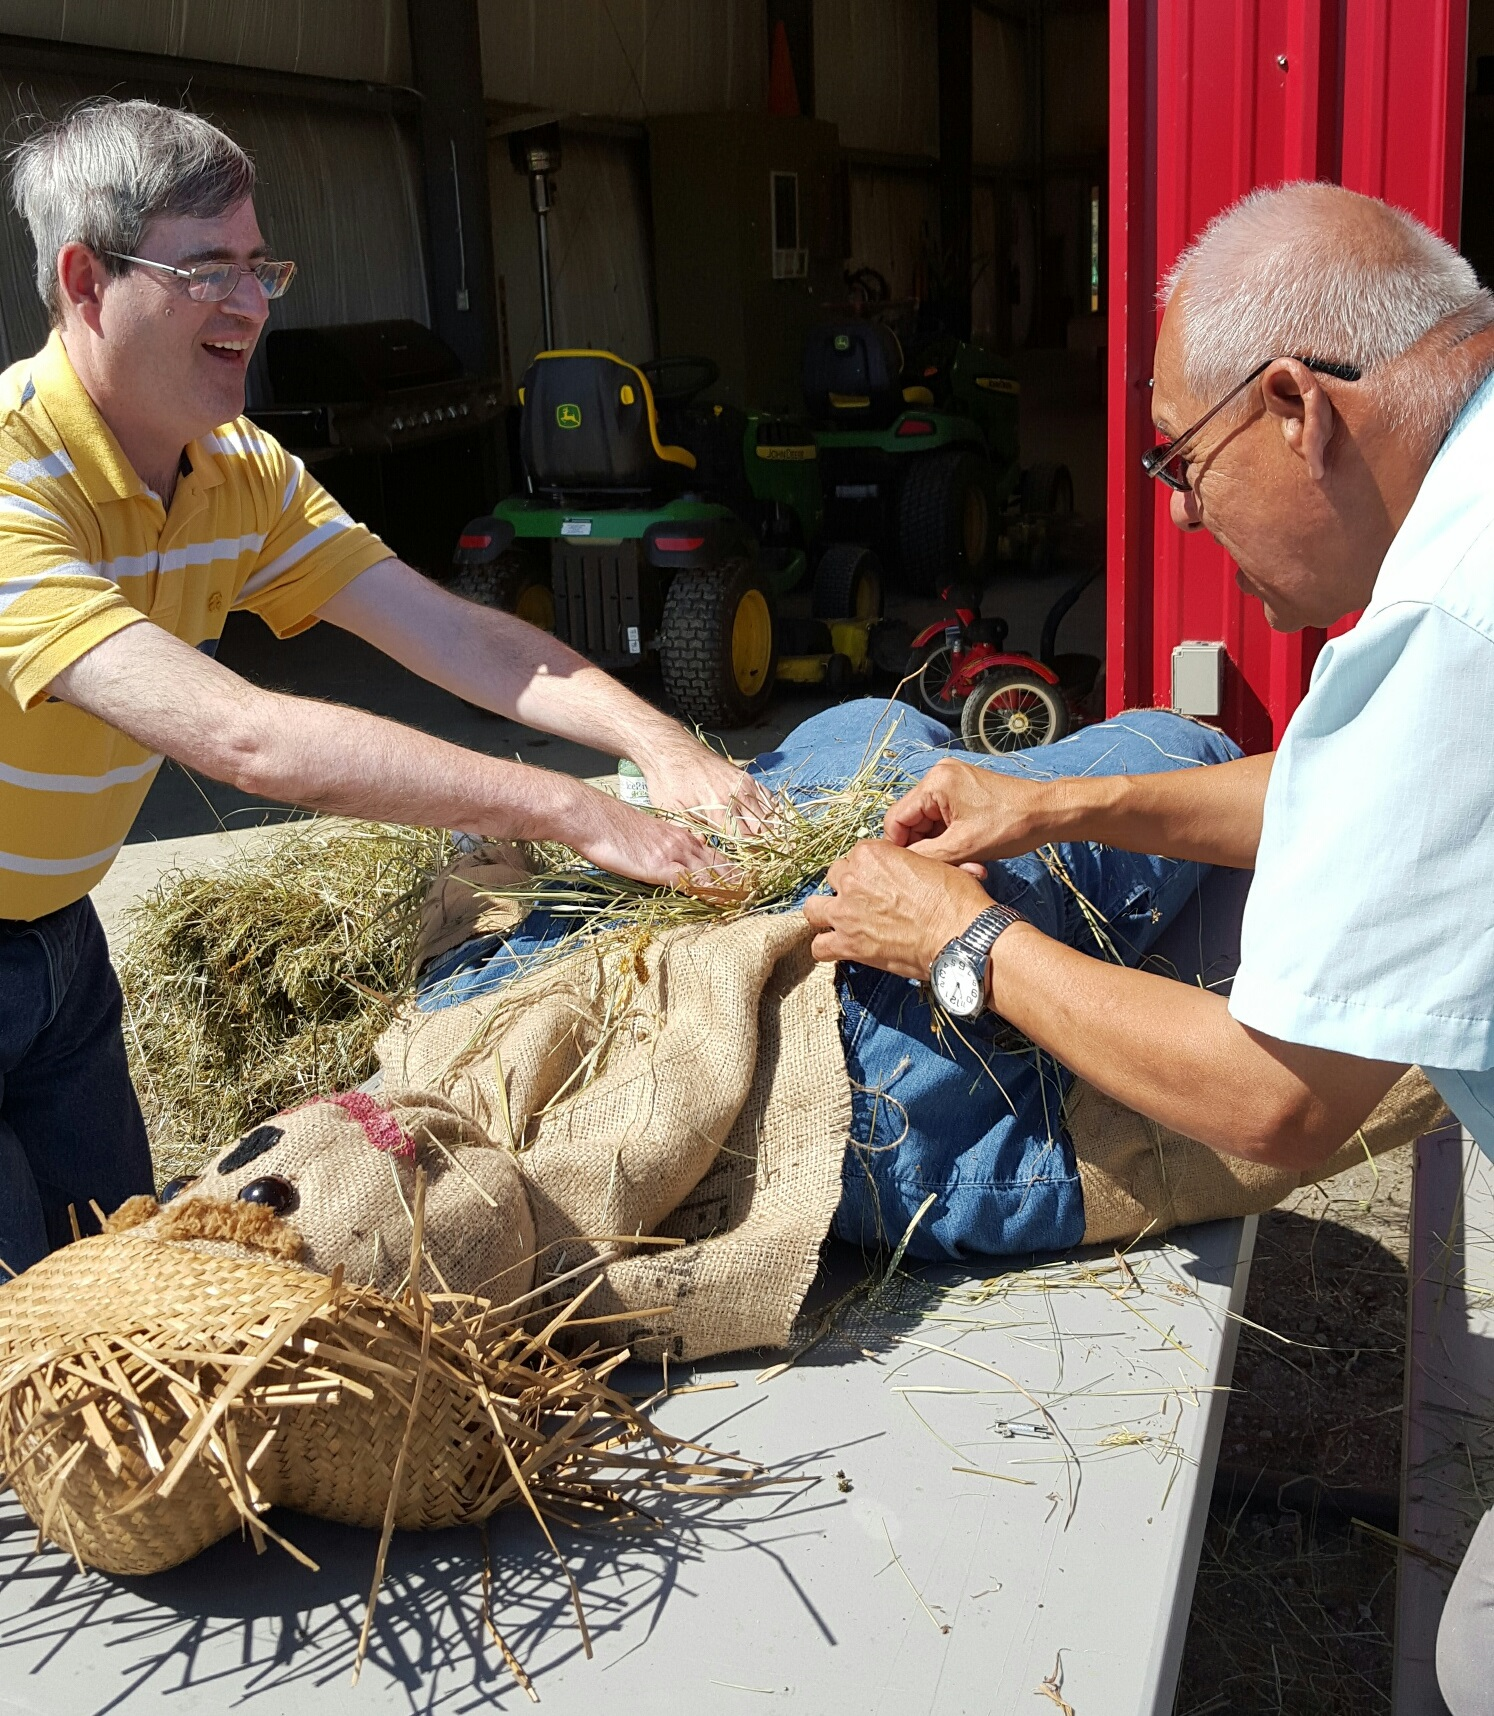 Stuffing the Scarecrow